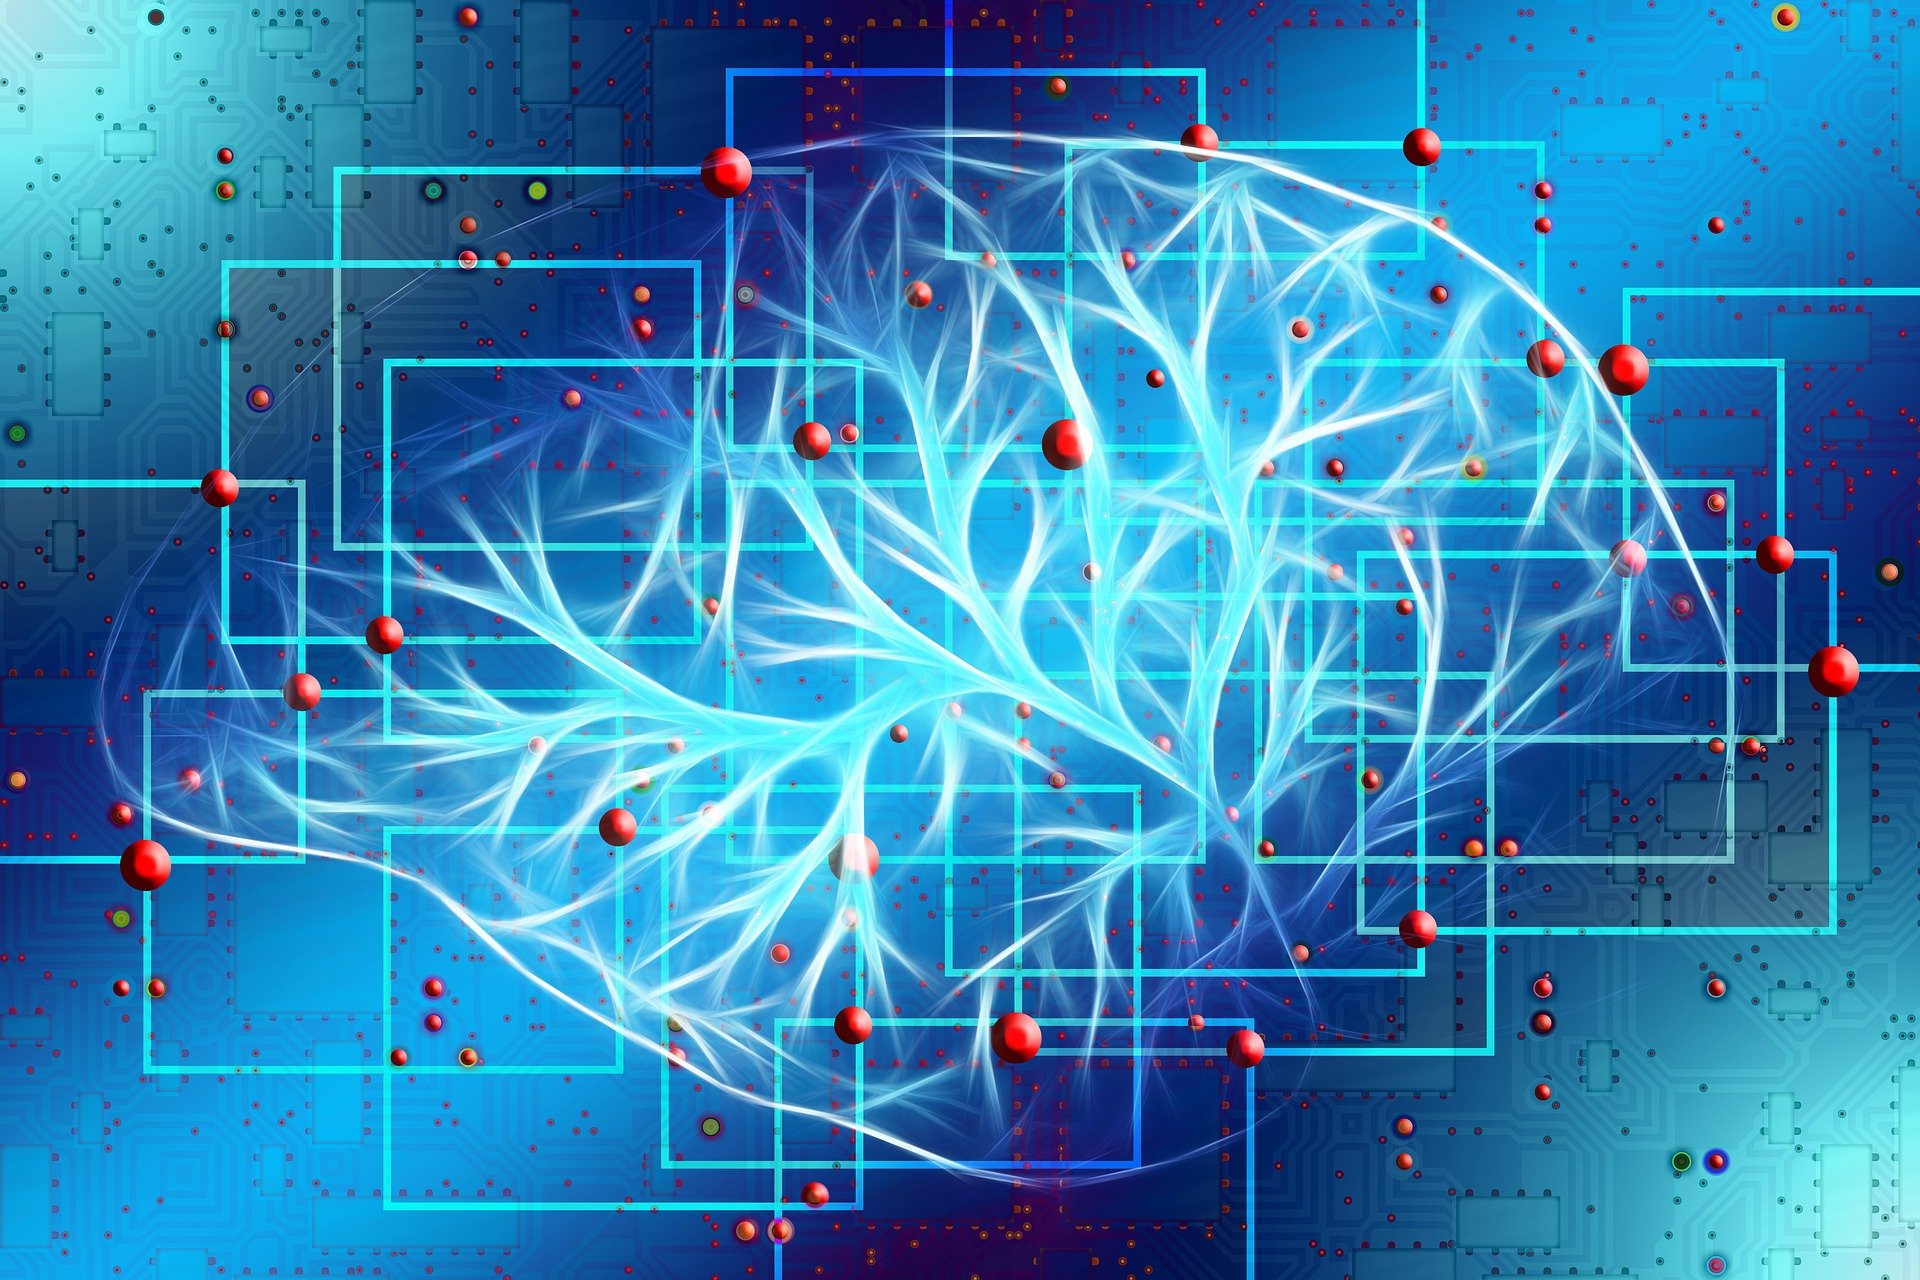 Advancing artificial intelligence research – MIT News